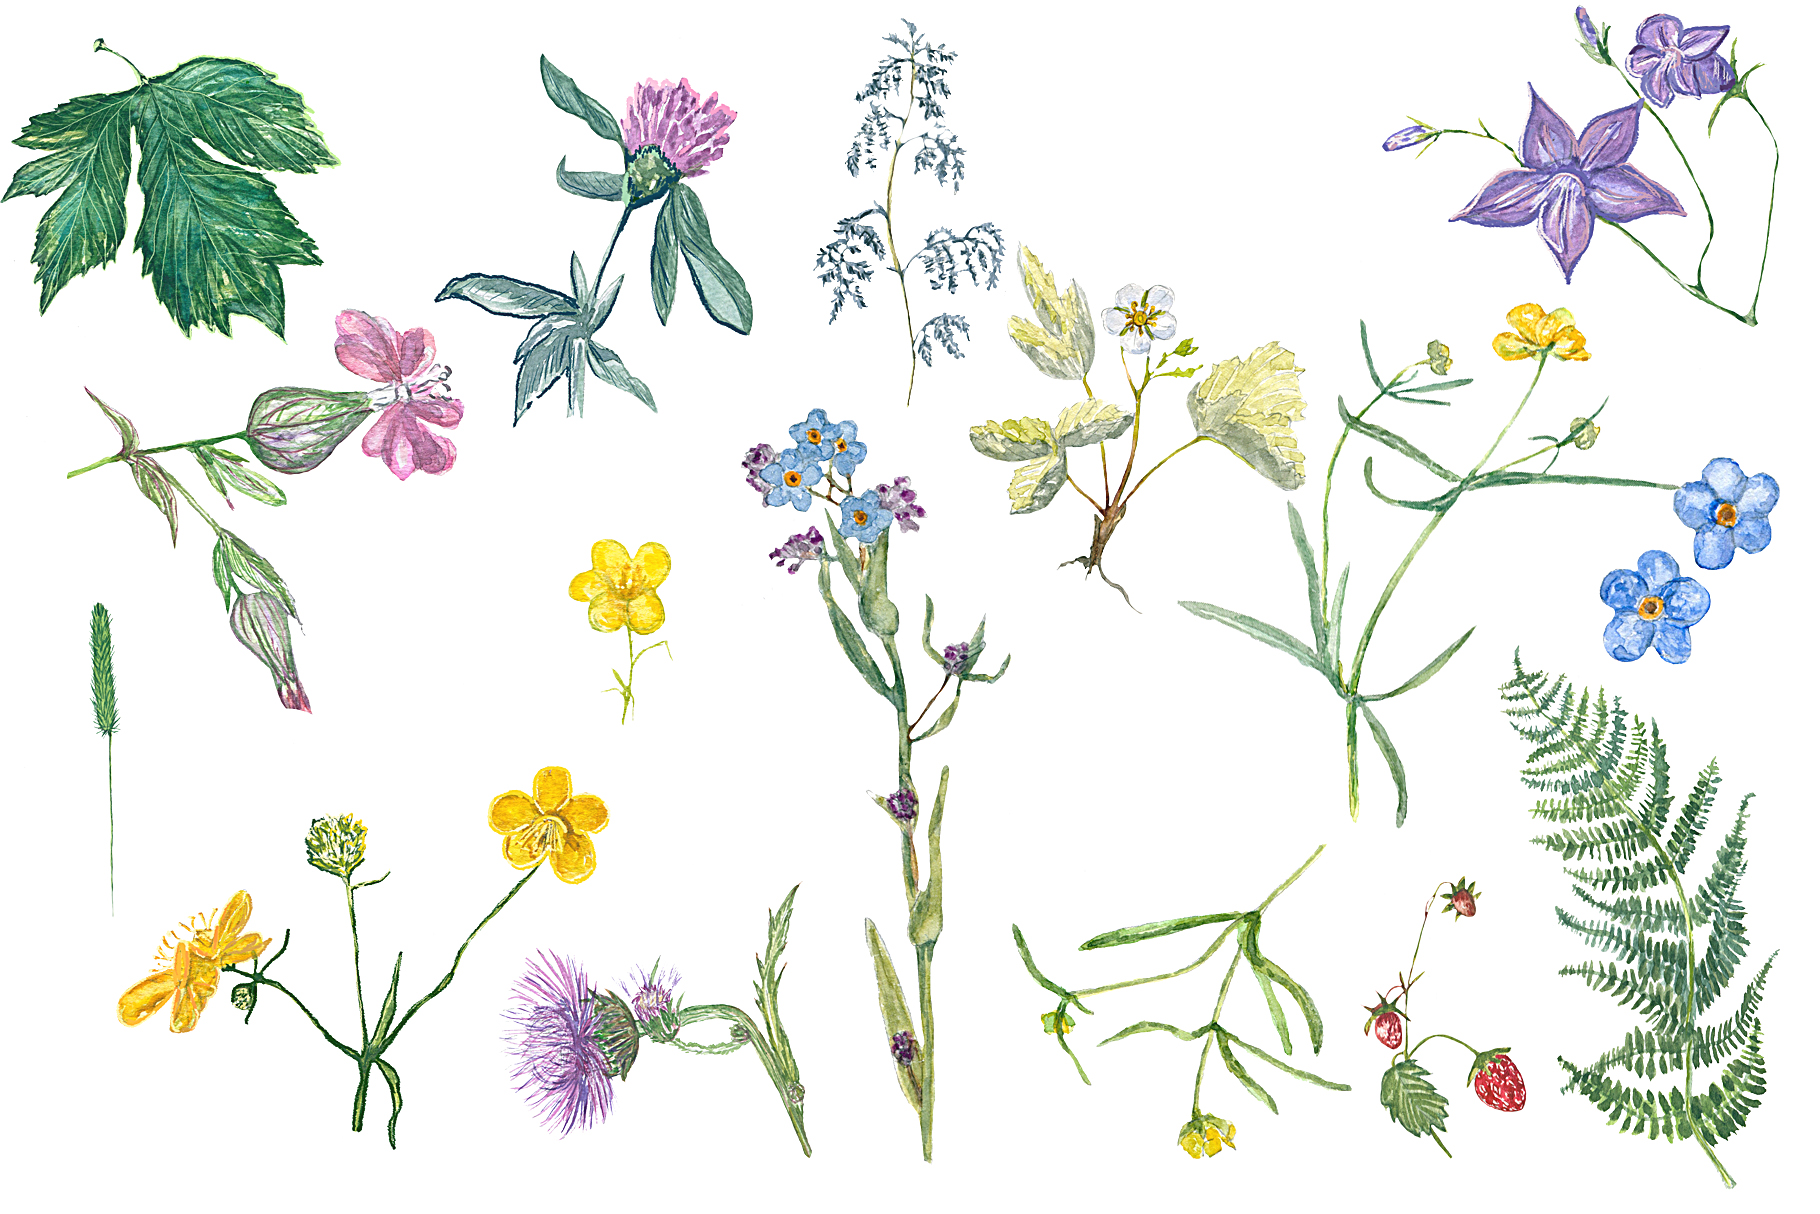 Watercolor grass and wildflowers example image 3